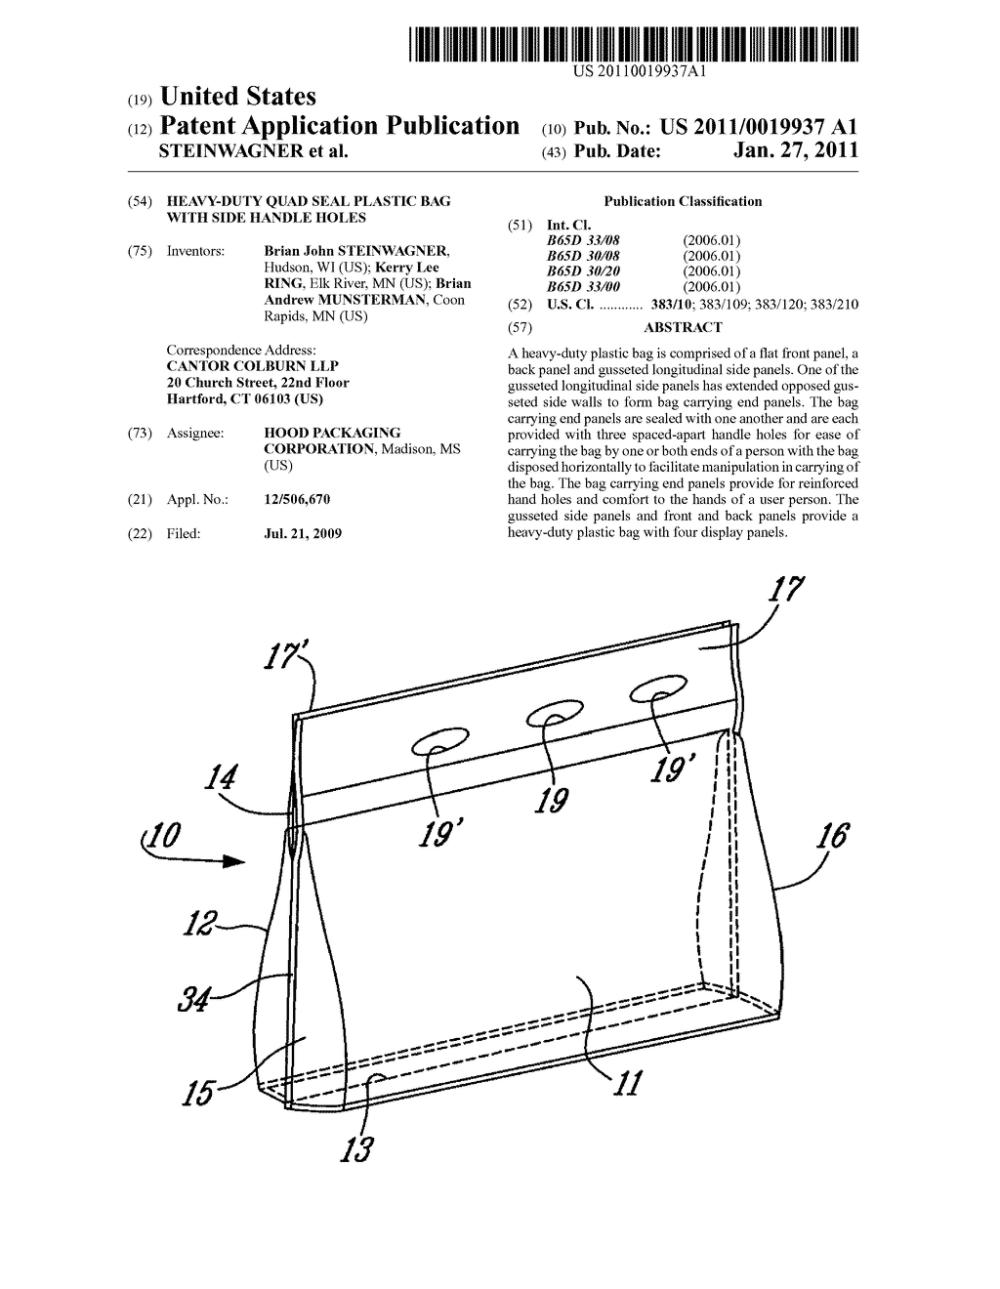 medium resolution of heavy duty quad seal plastic bag with side handle holes diagram schematic and image 01